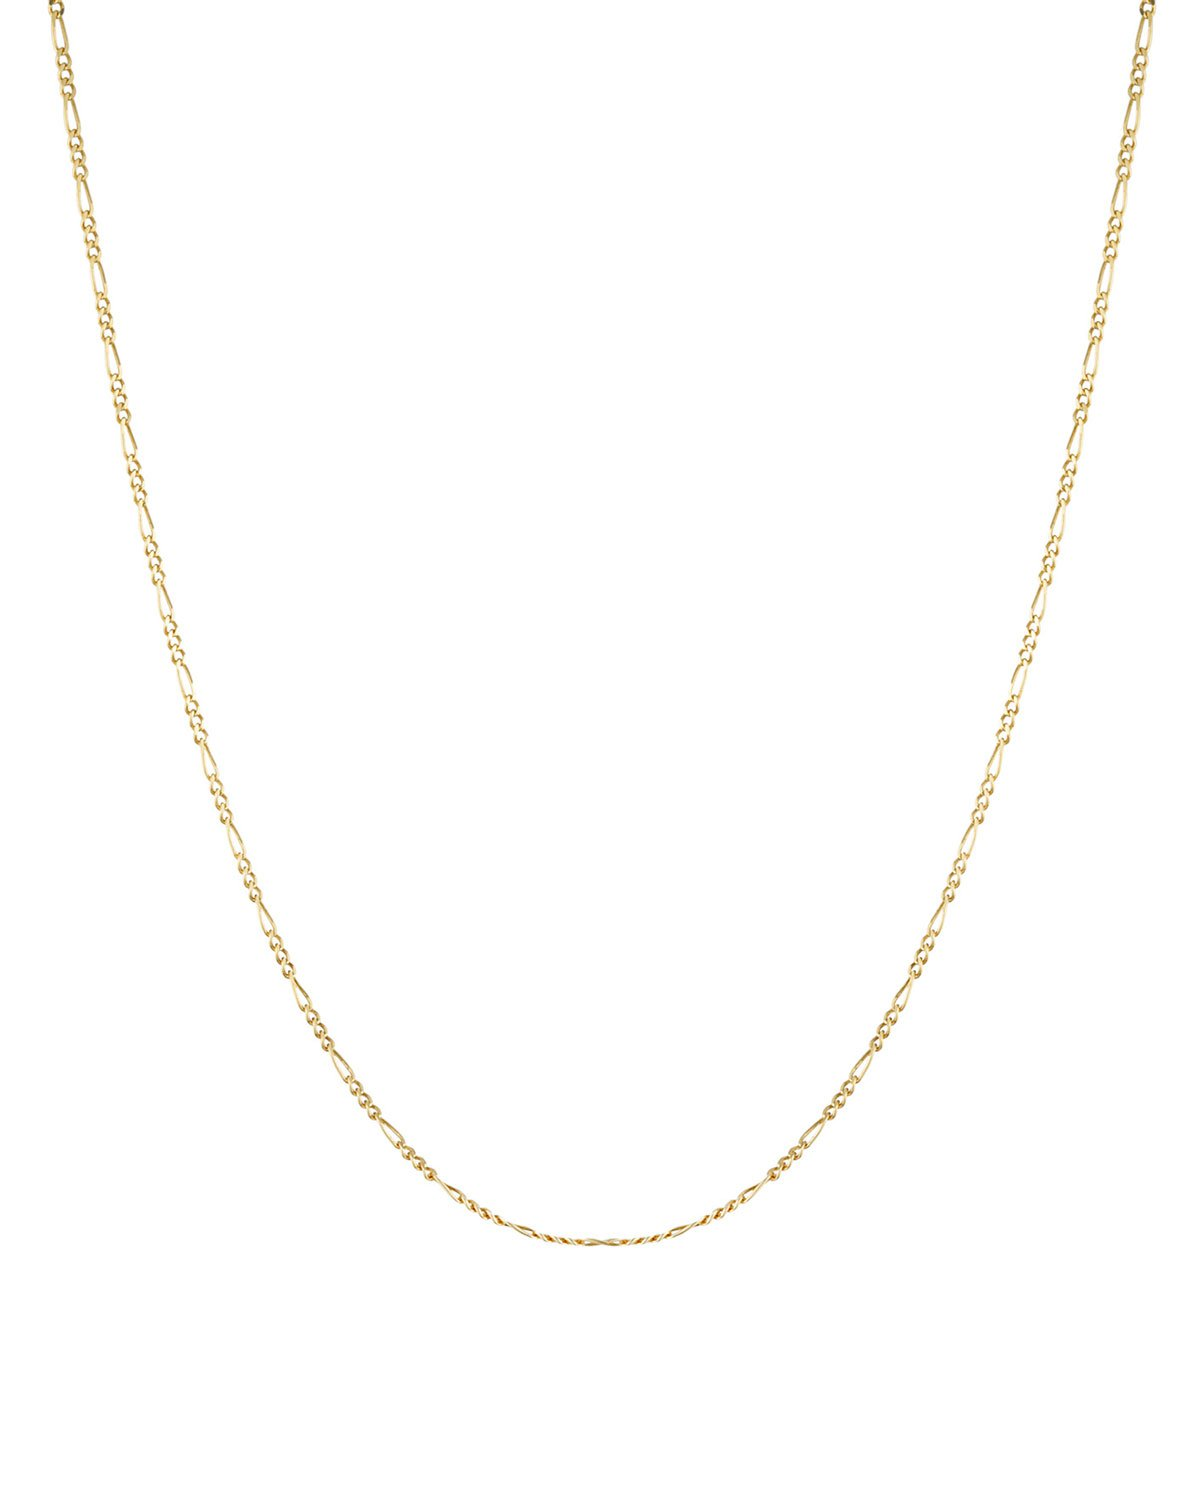 Layering Chain | 9k Gold